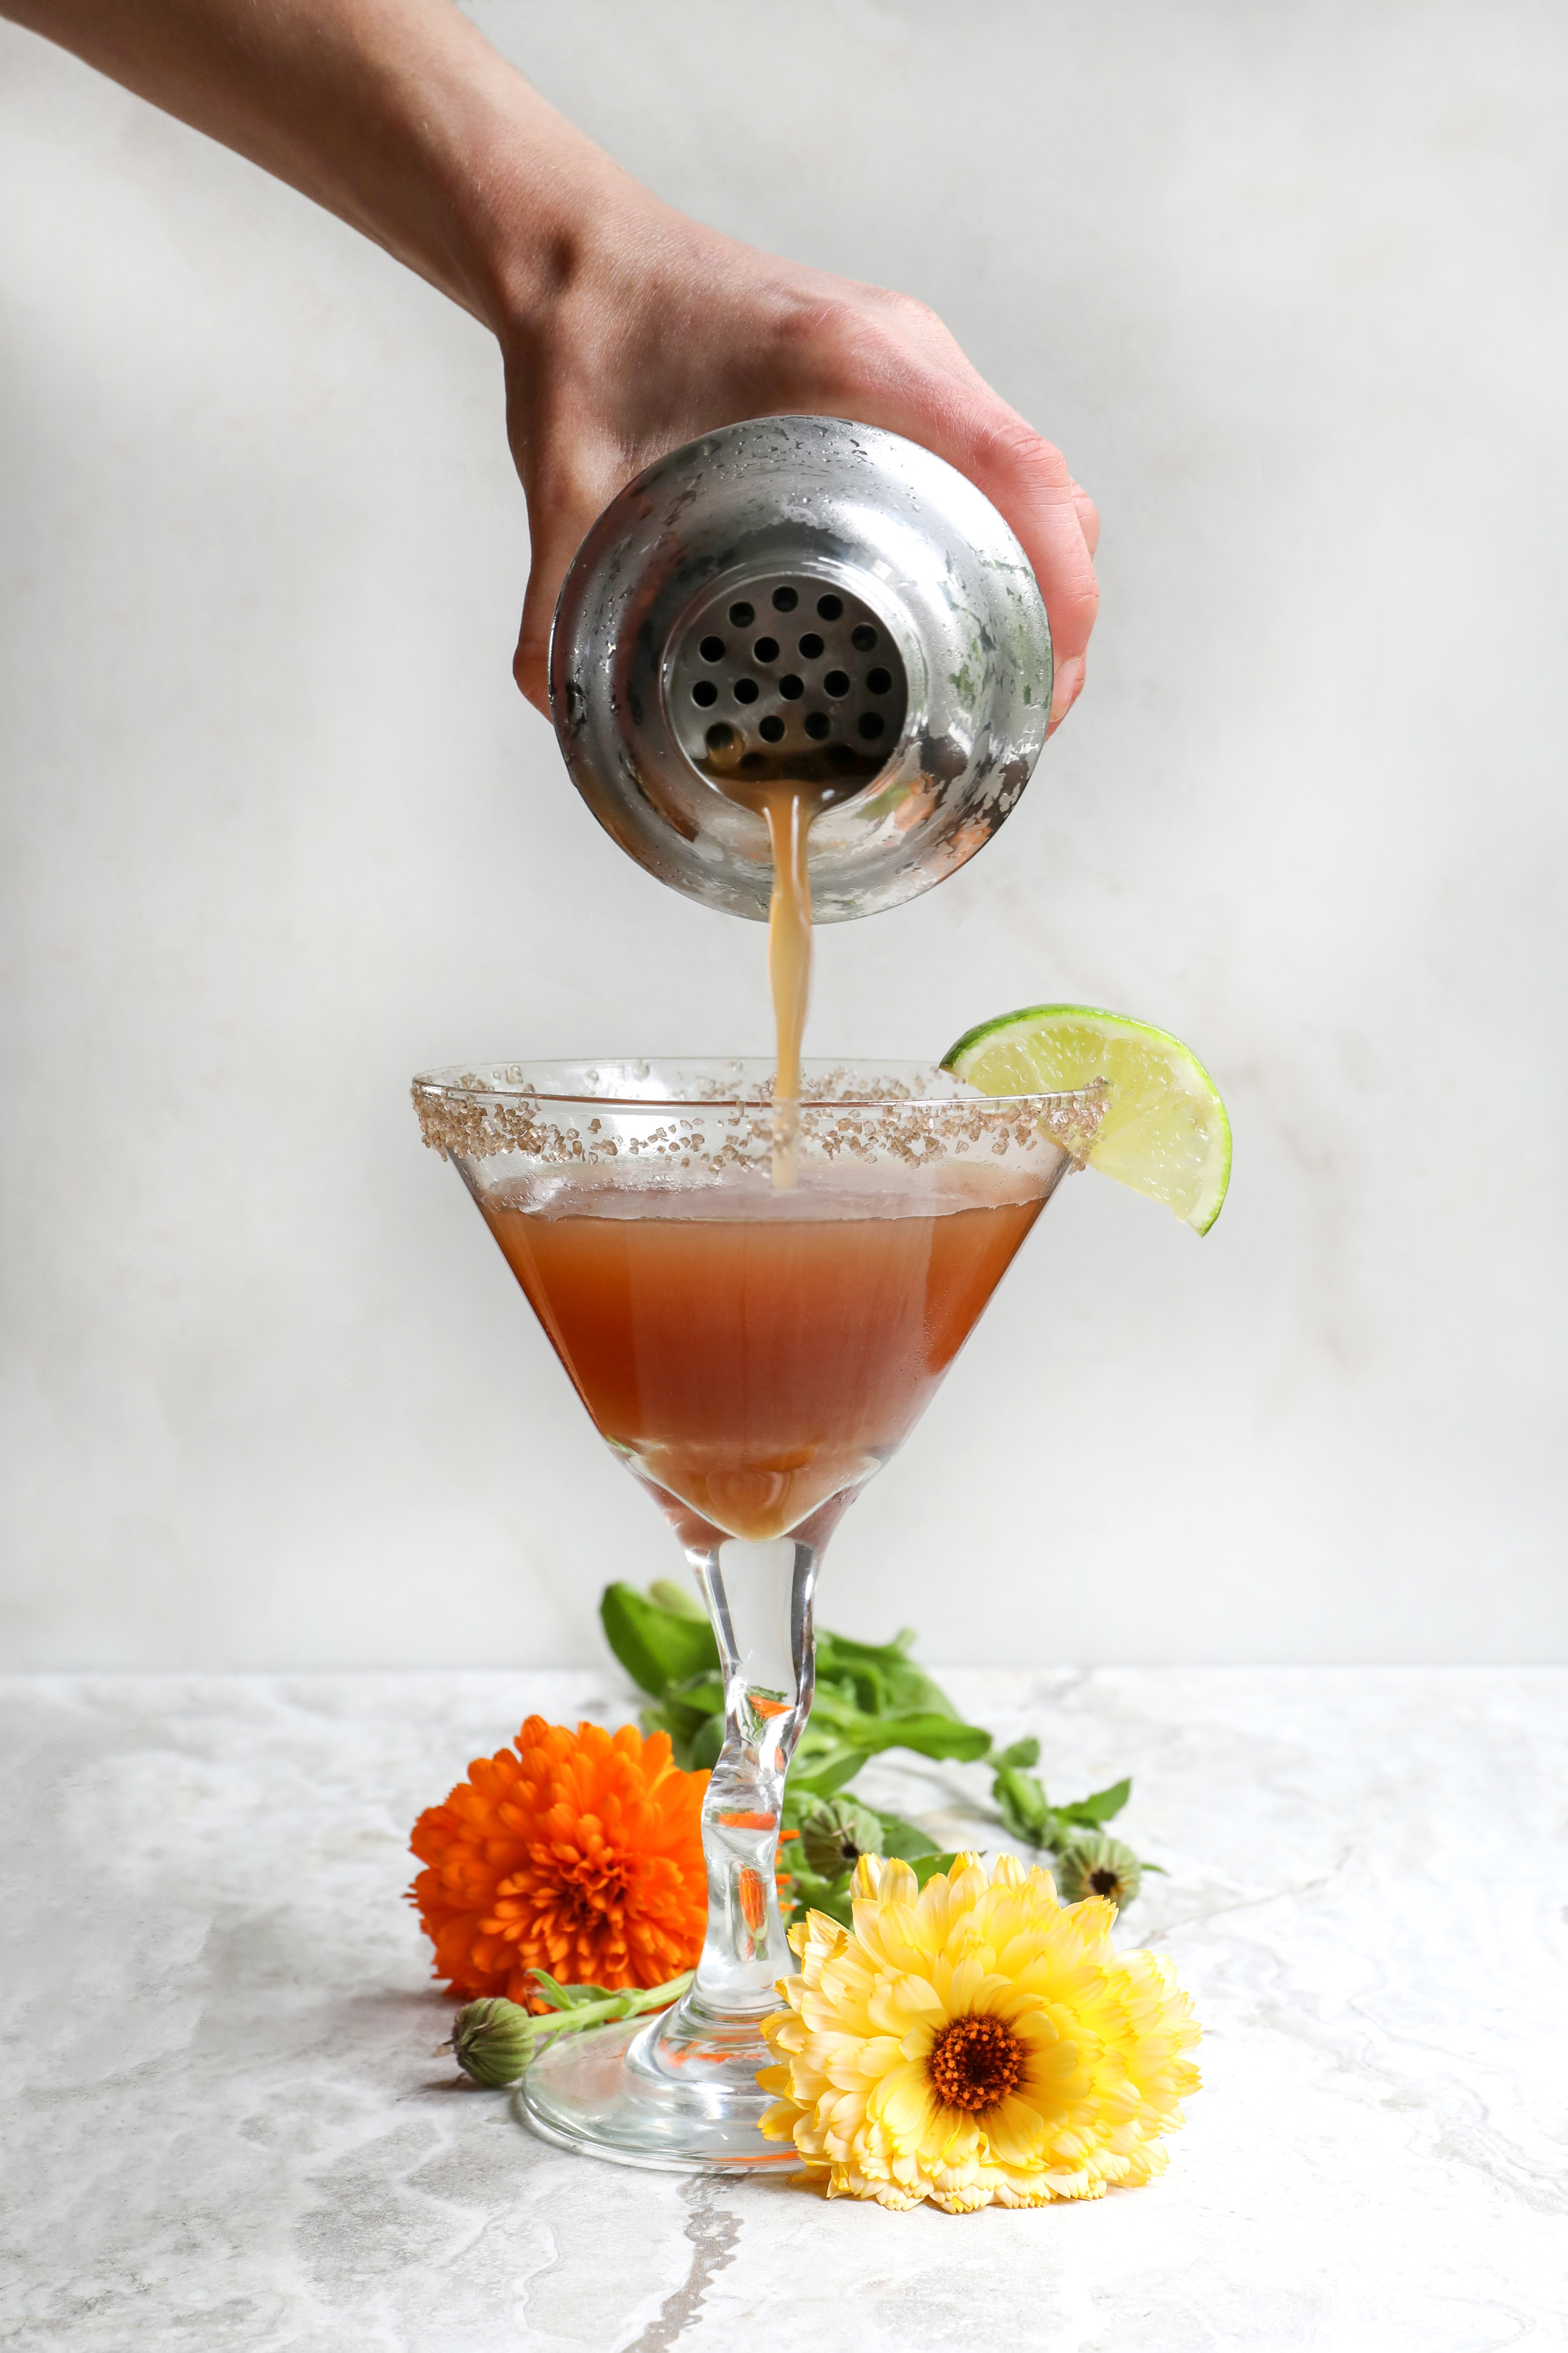 Hand pouring herbal cocktail into margarita glass with smoked salt on rim and flowers on counter